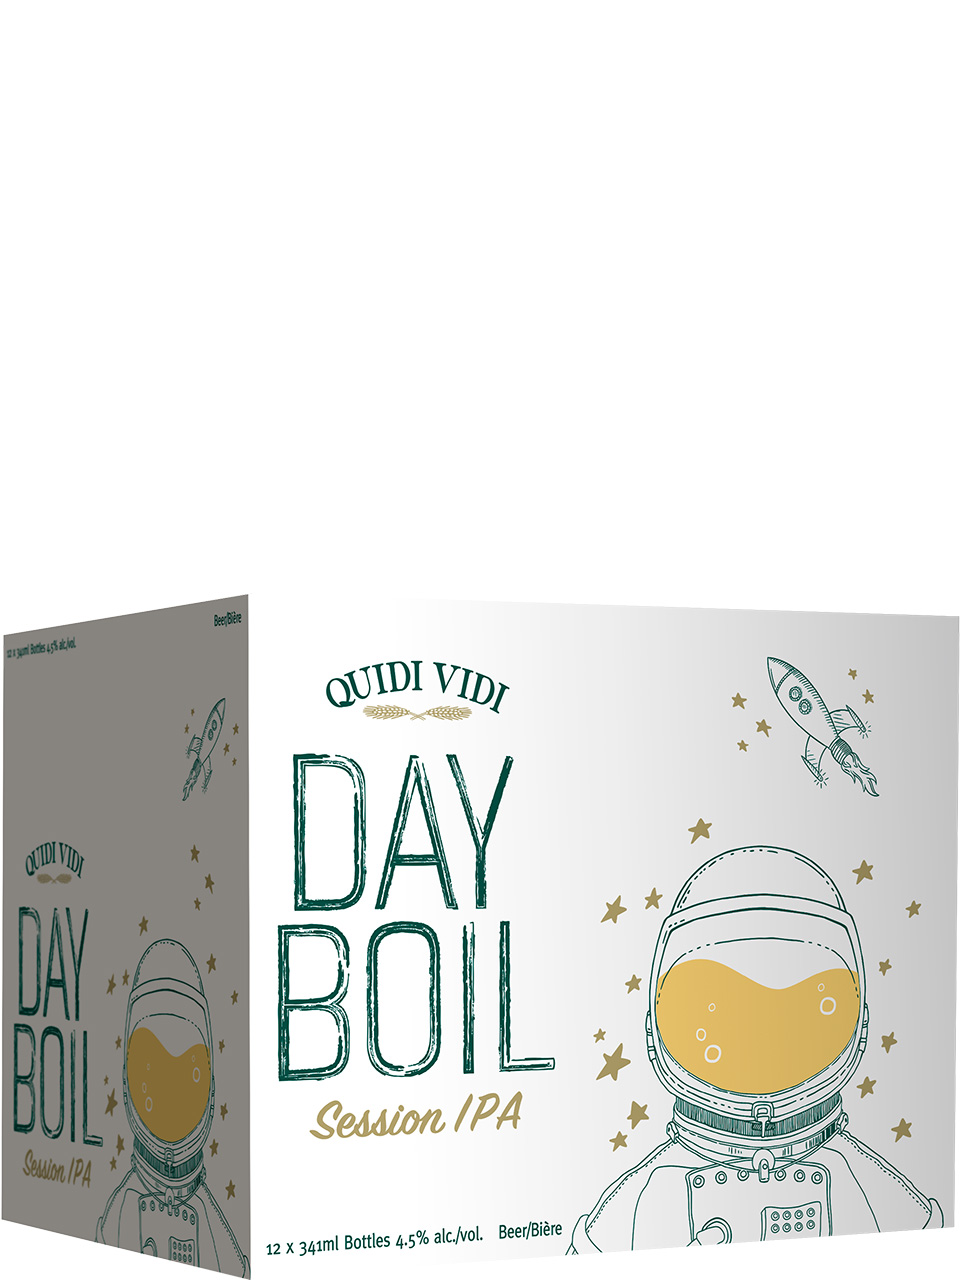 Quidi Vidi Dayboil Session IPA 12 Pack Bottles